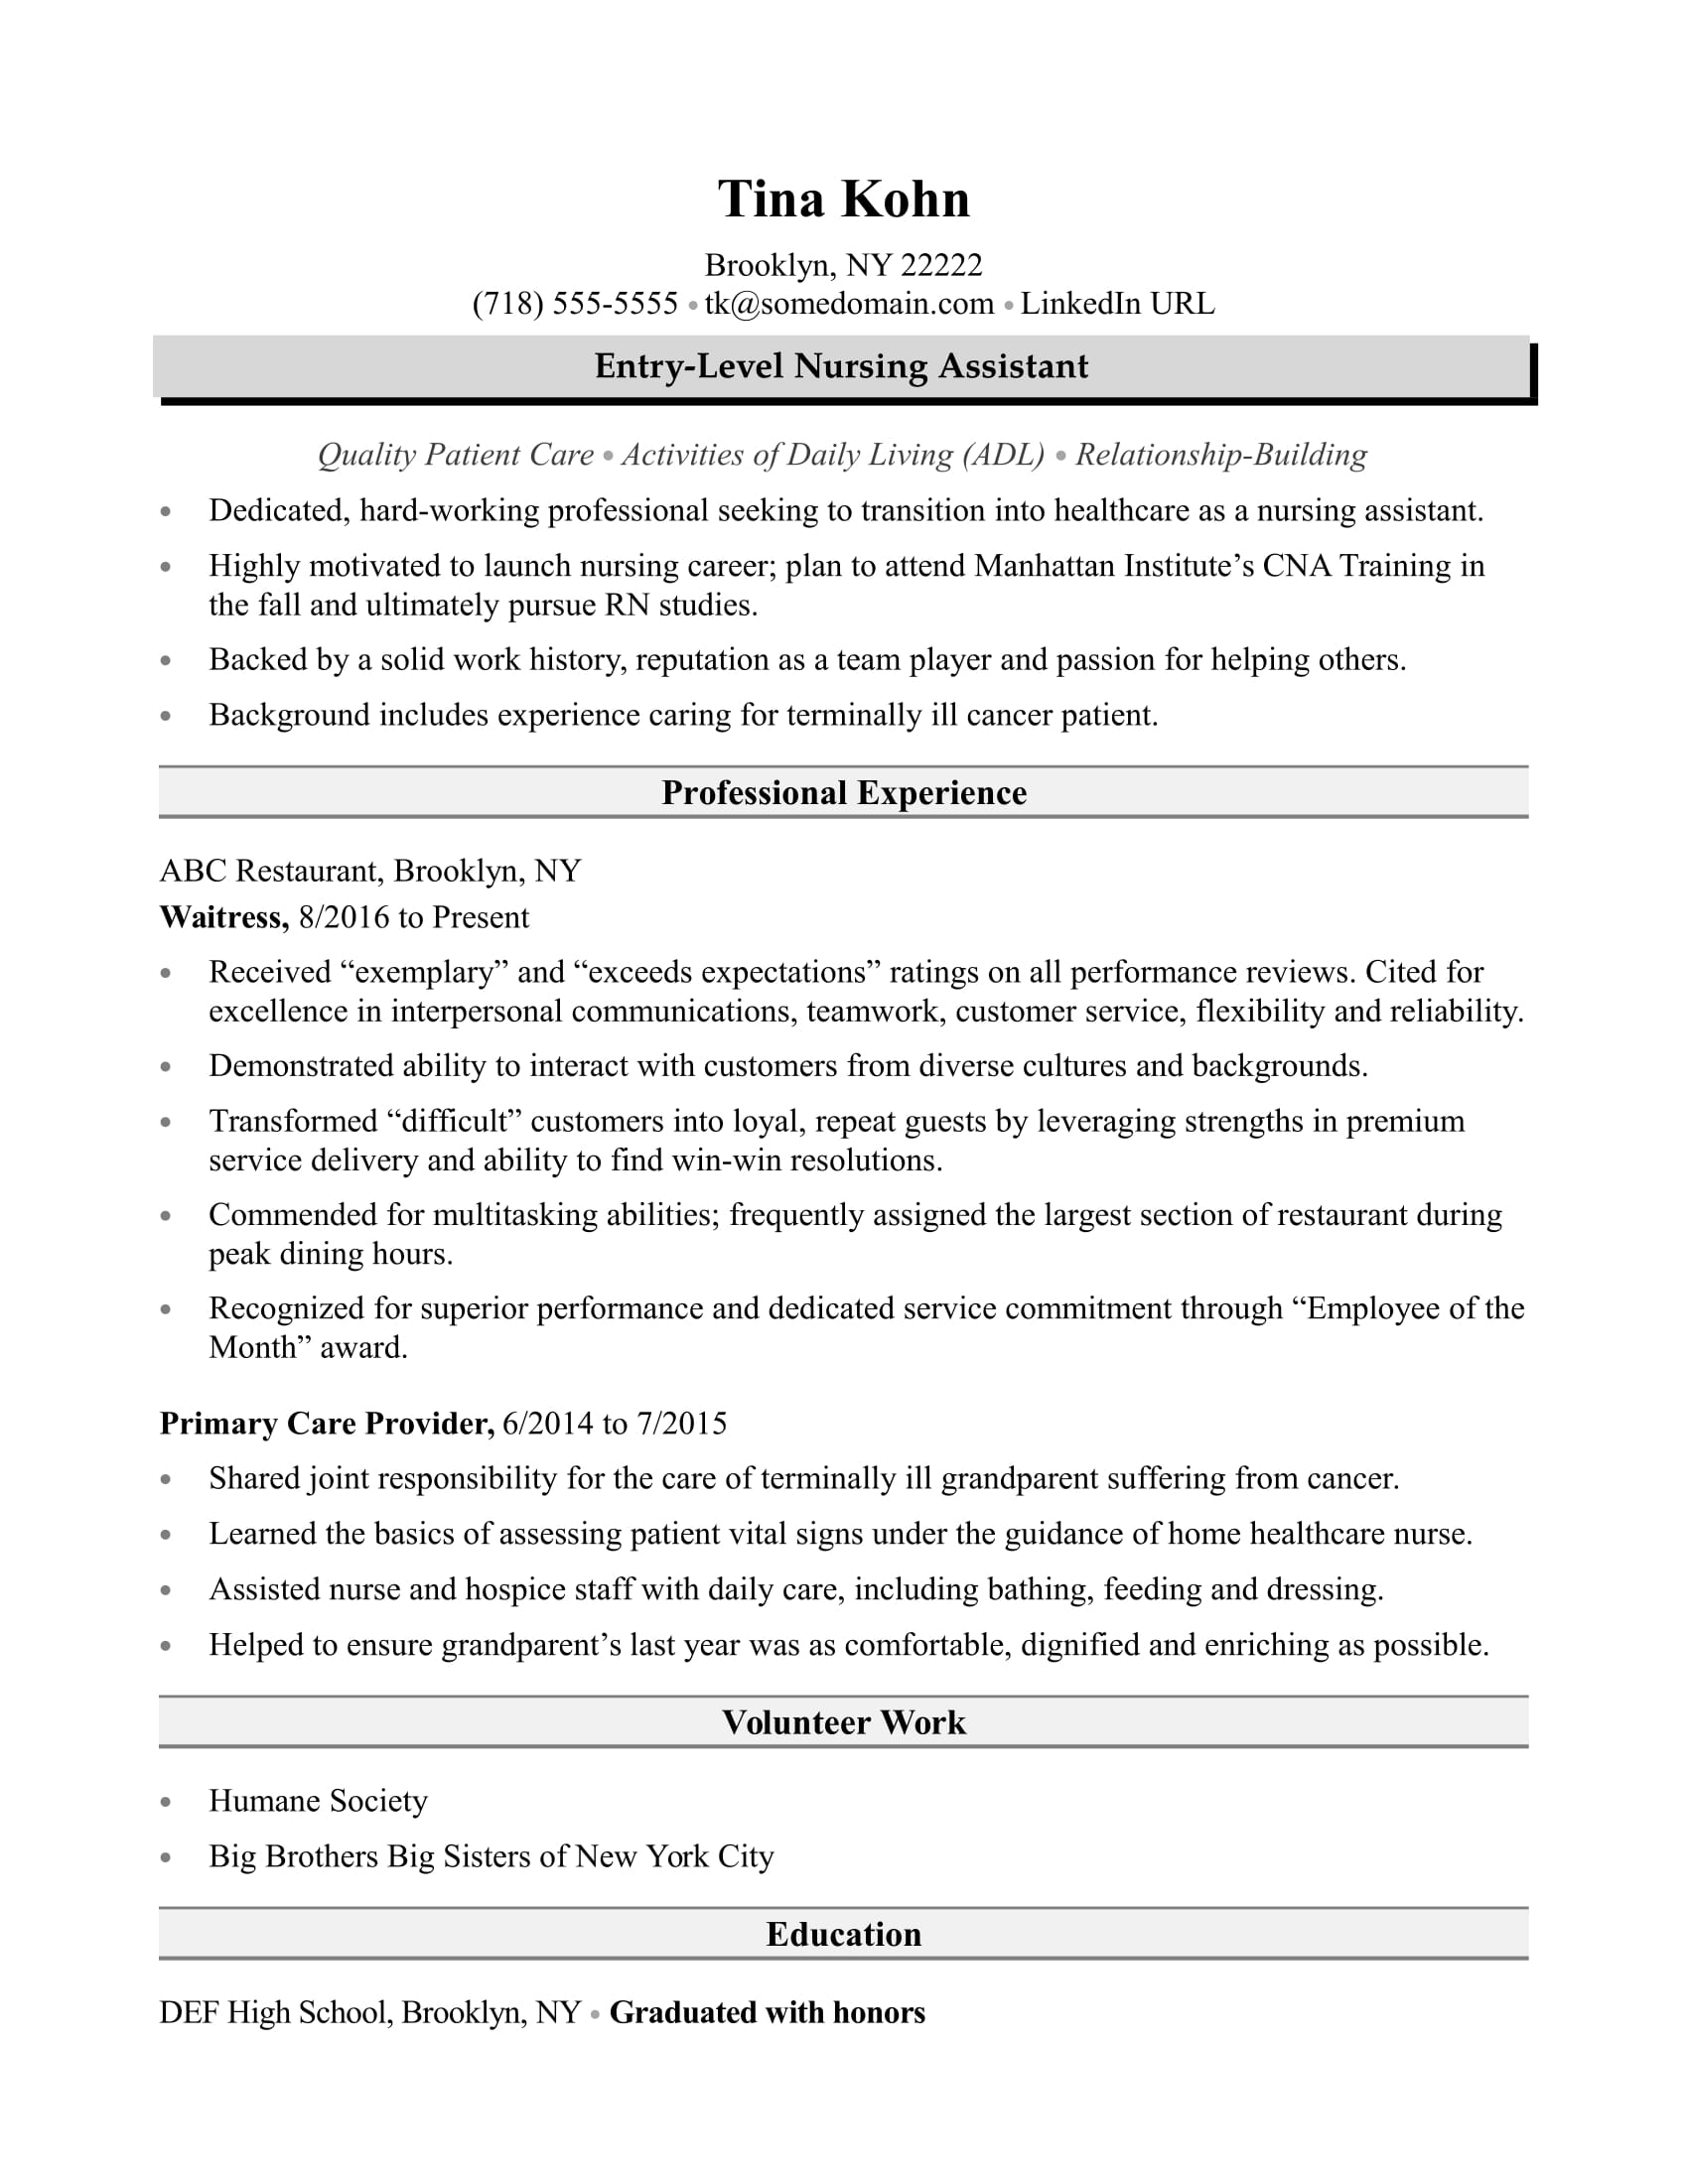 Nursing Assistant Resume Sample  Sample Nursing Assistant Resume